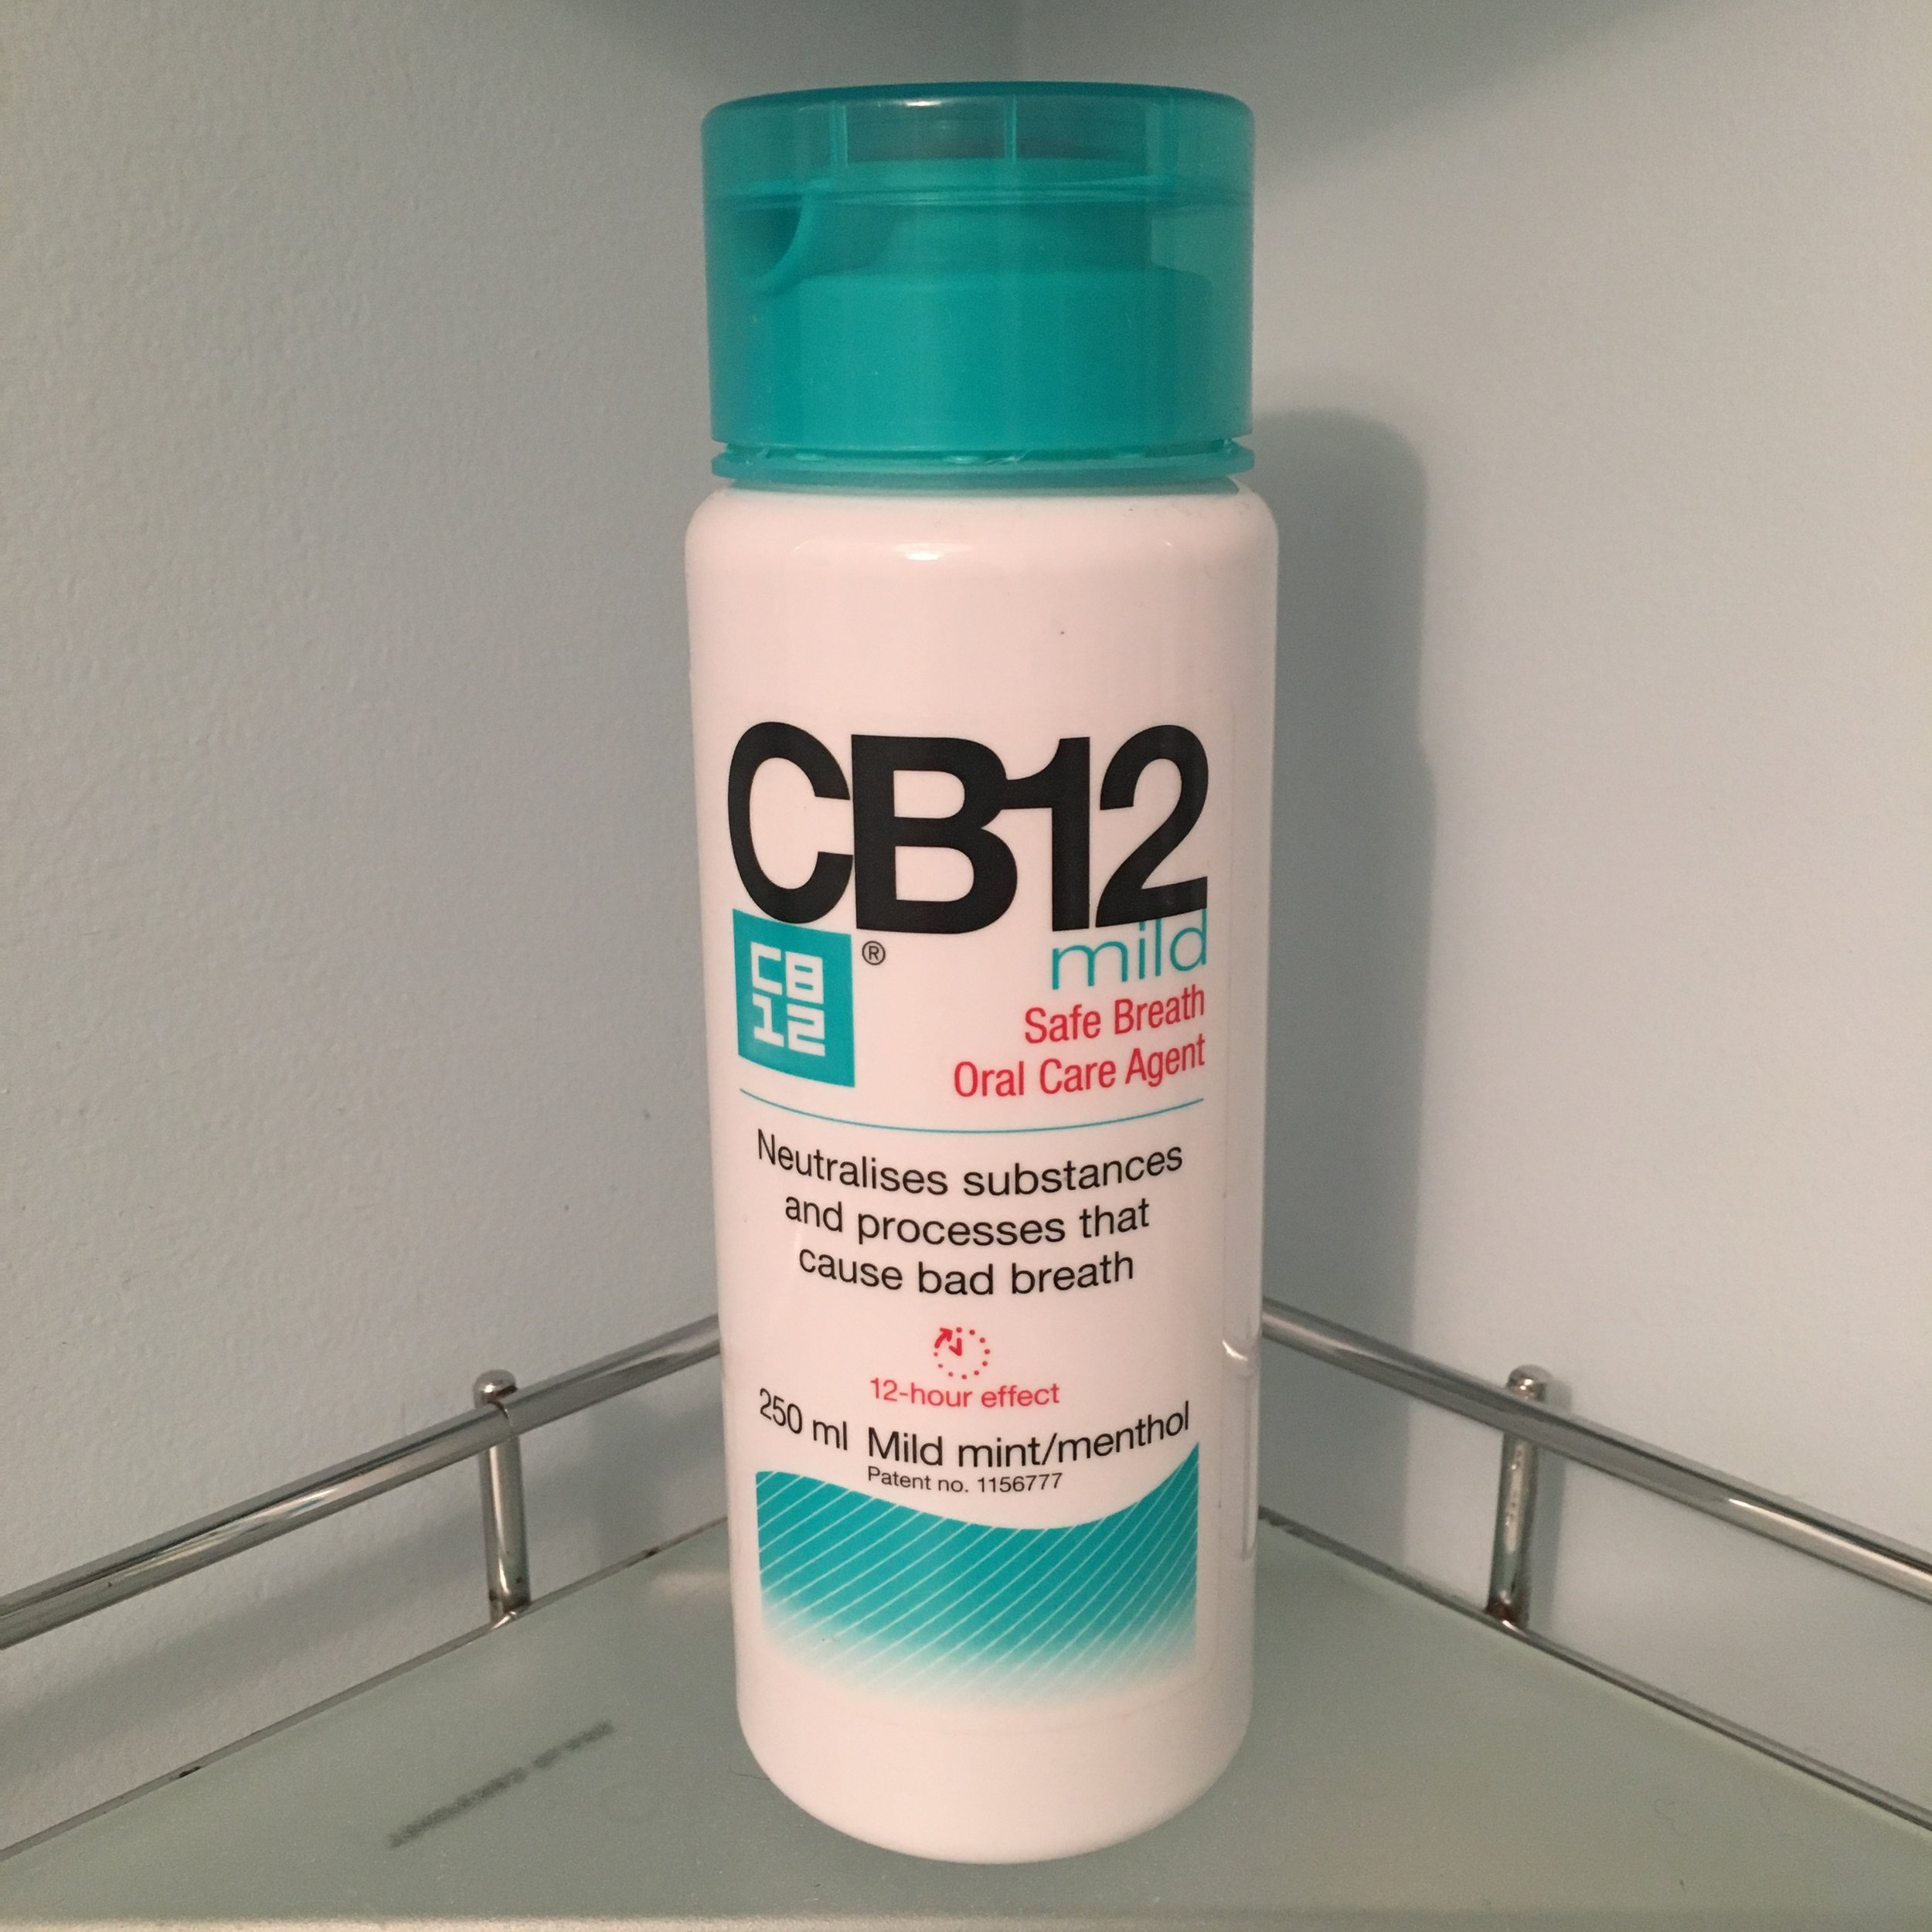 CB12 Mouthwash, the main product in the same range as the gum